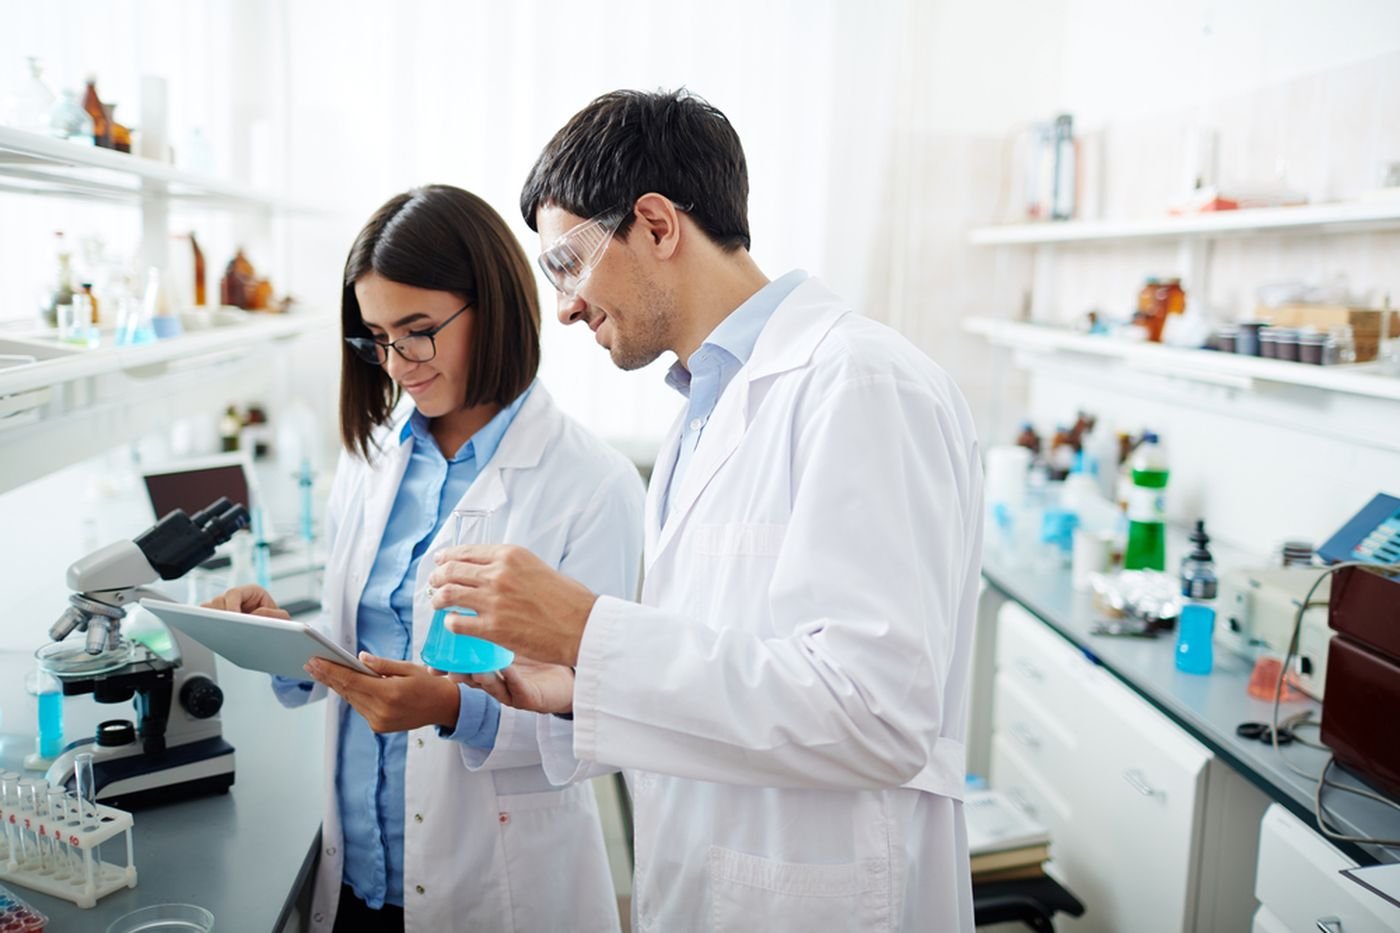 https://tickertapecdn.tdameritrade.com/assets/images/pages/md/Two people working in a pharmaceutical lab